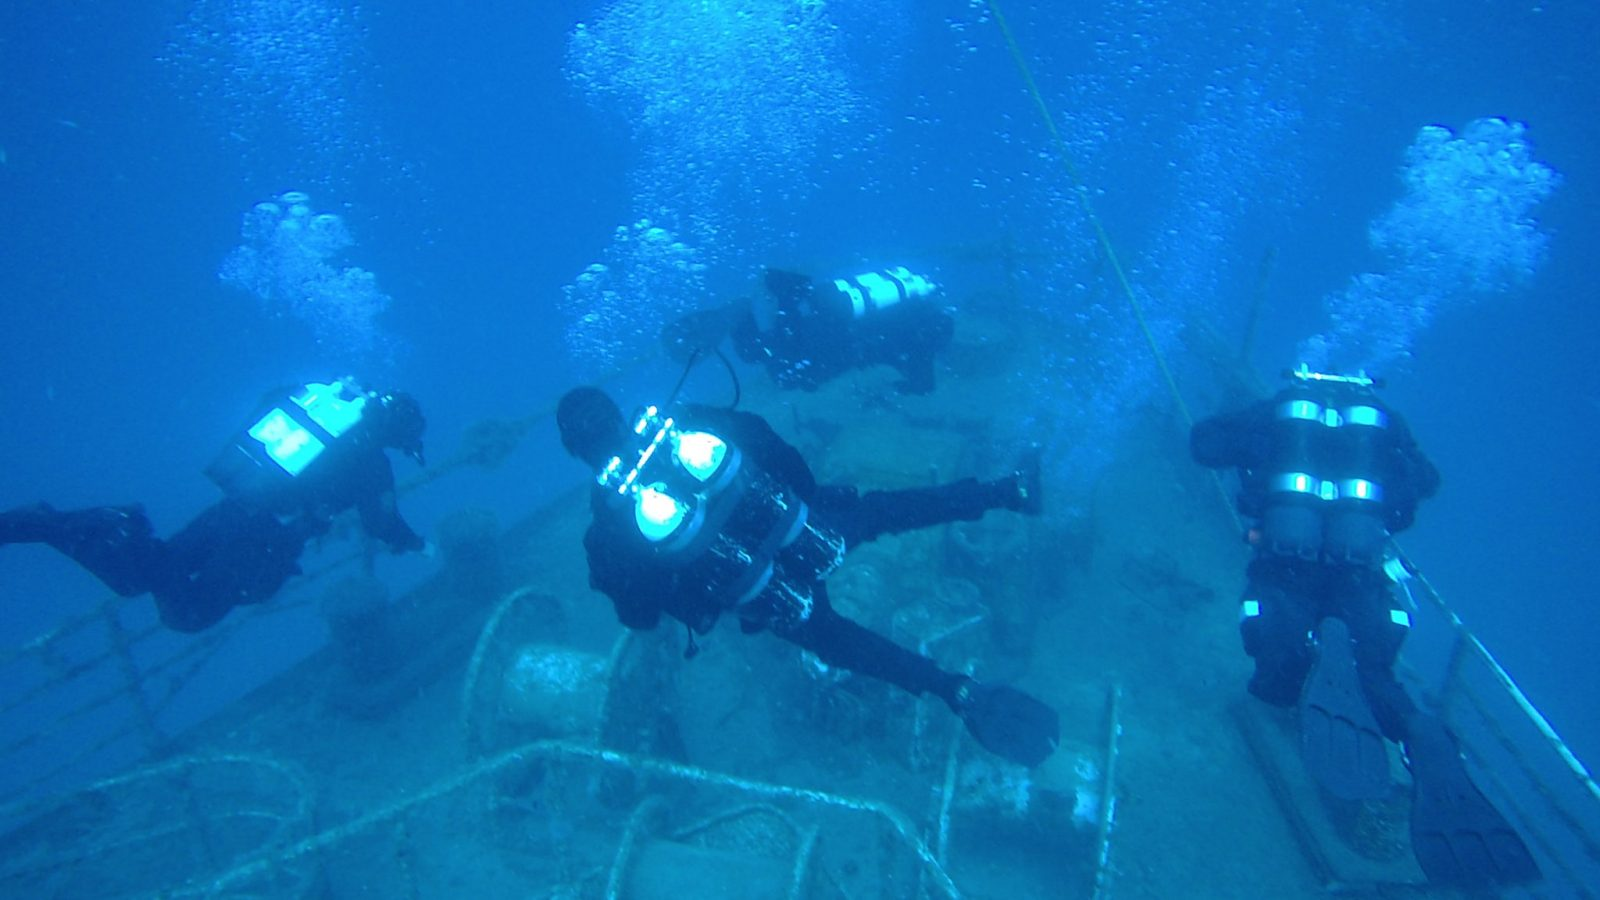 VERUDELA,DIVING & UNDERWATER LIFE AT SPOT LIGHTHOUSE IN PULA